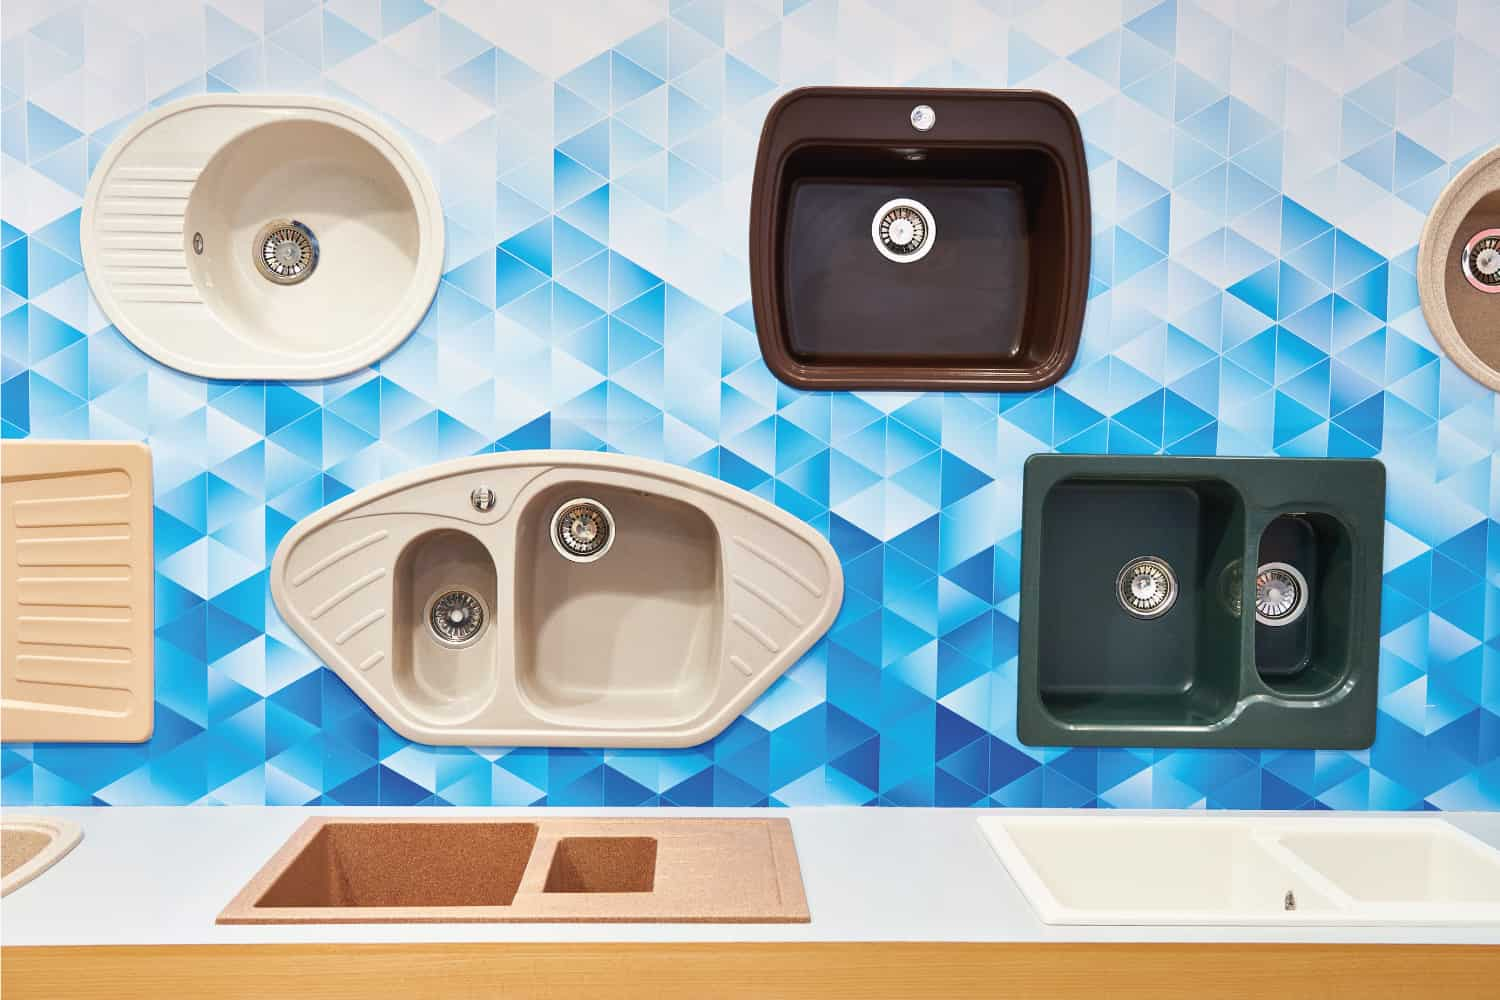 Kitchen sinks in store display